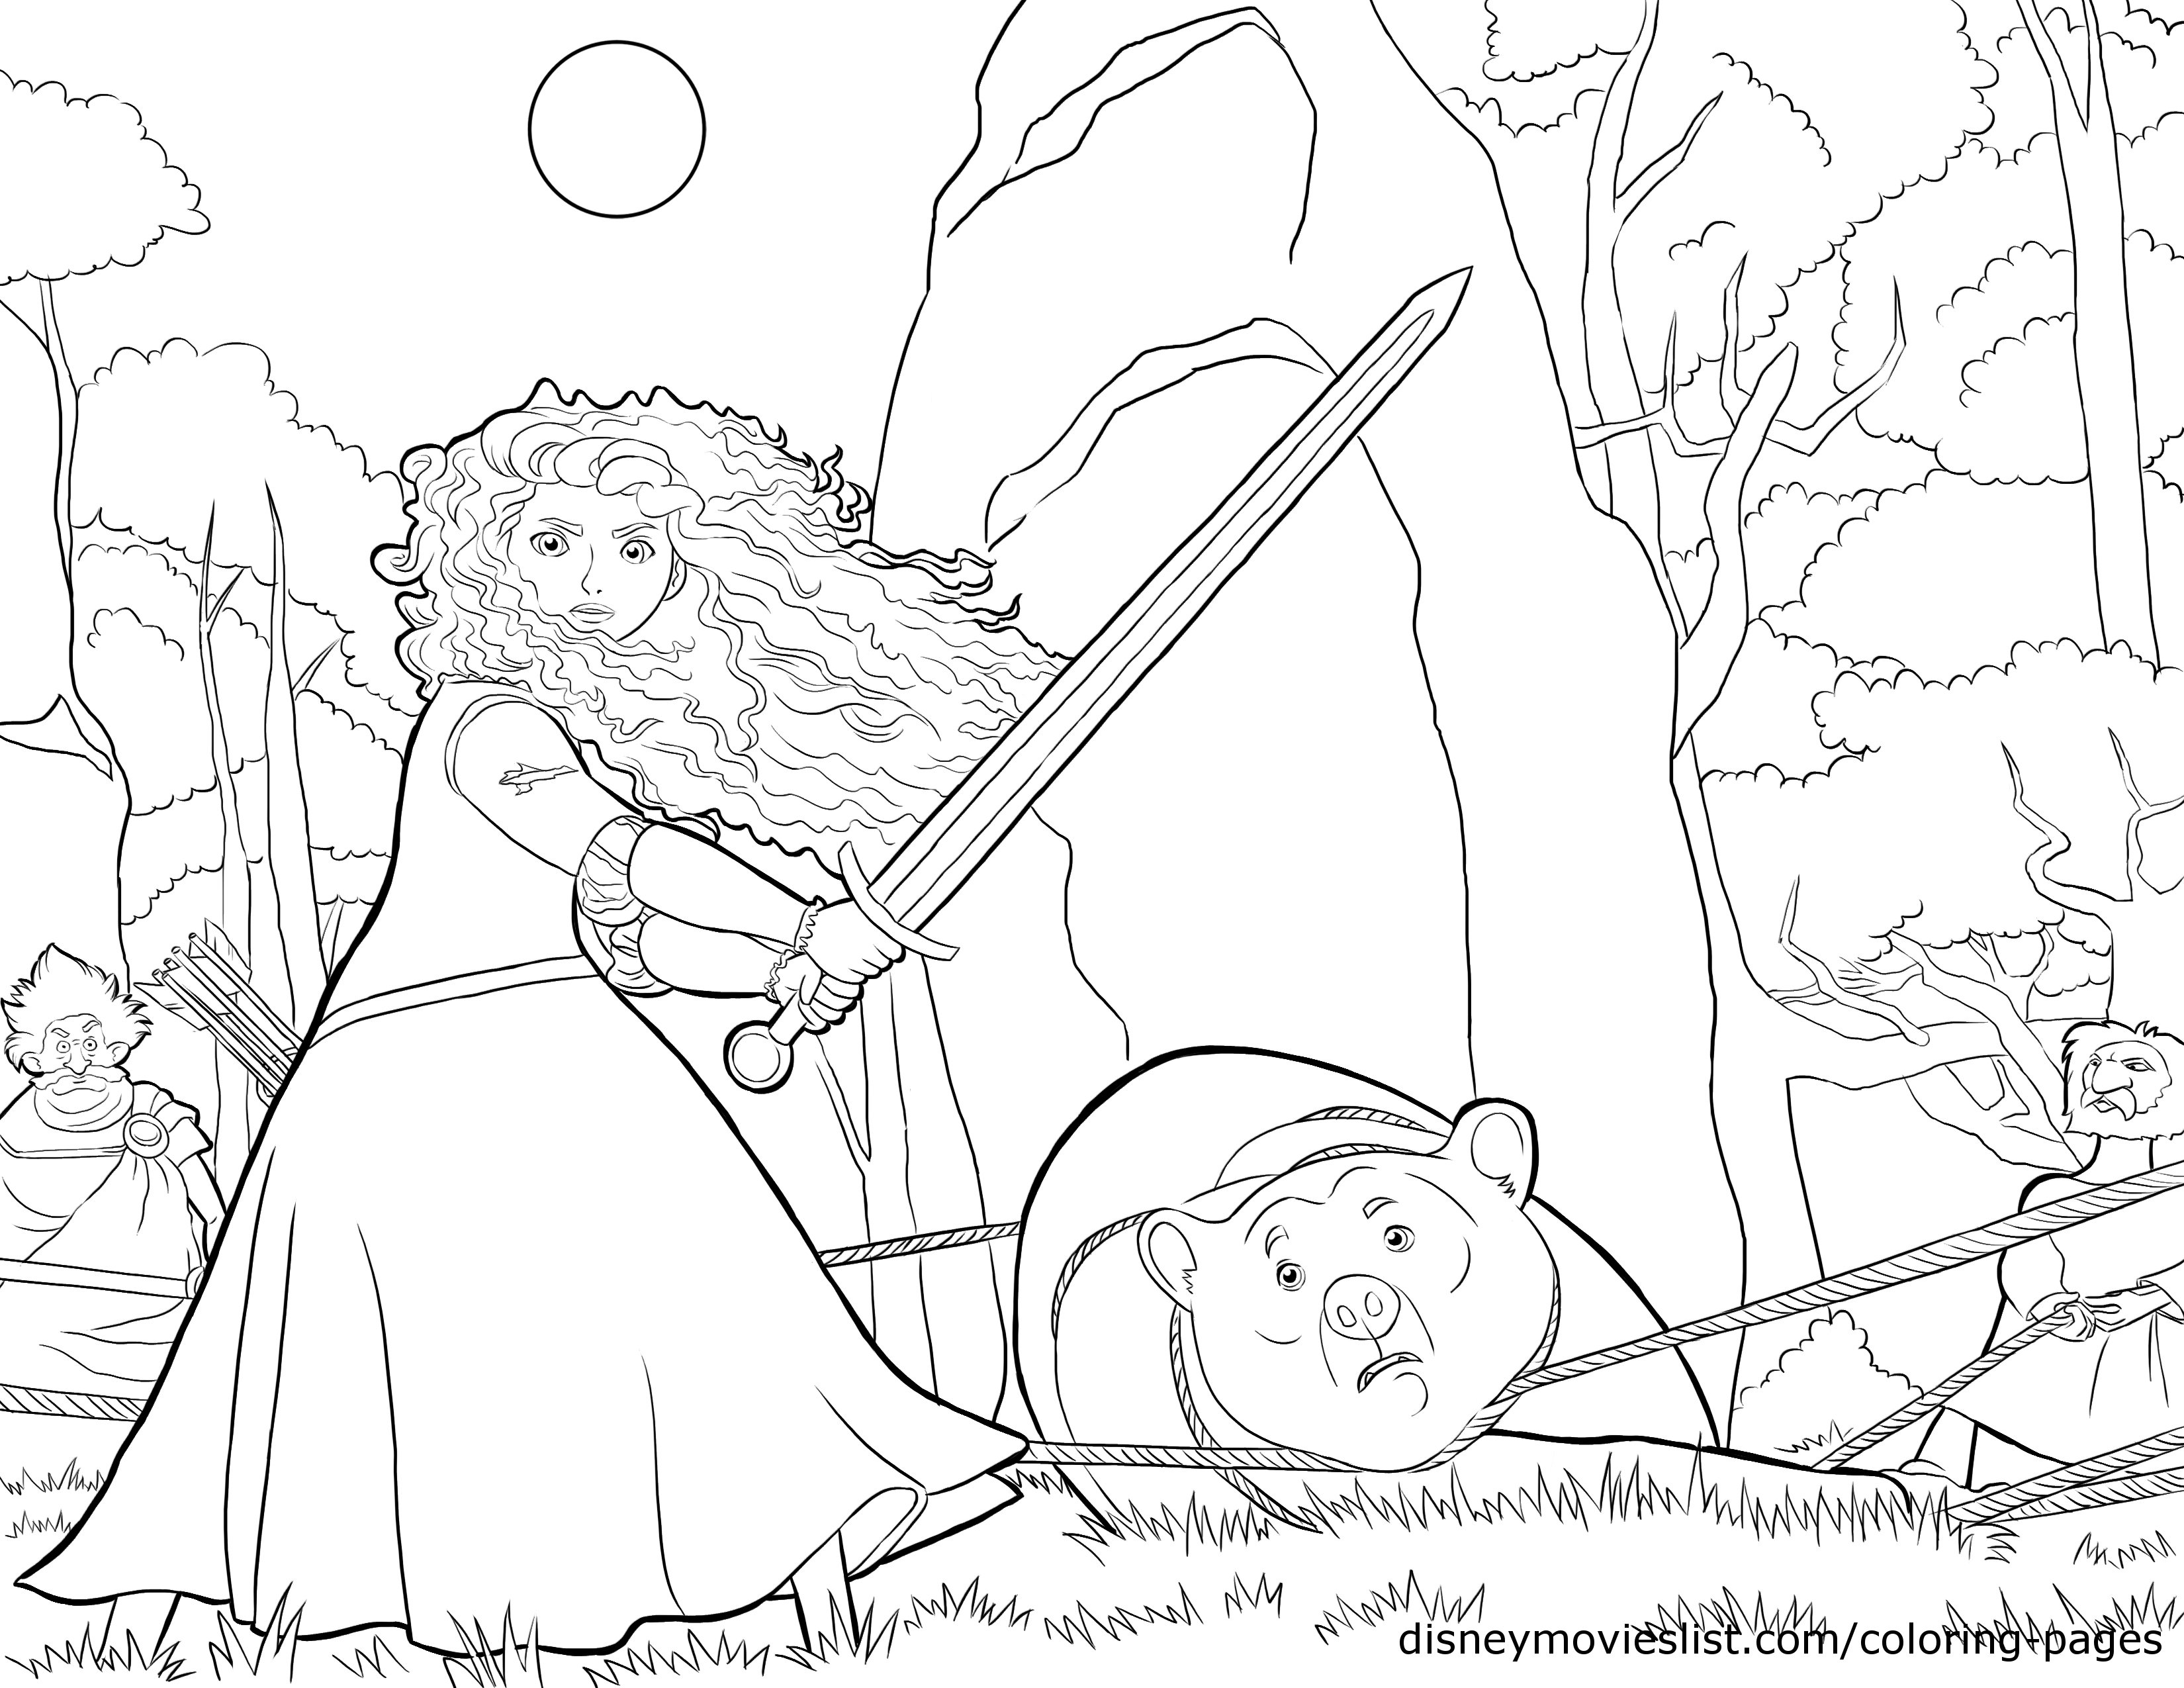 Merida in action coloring page